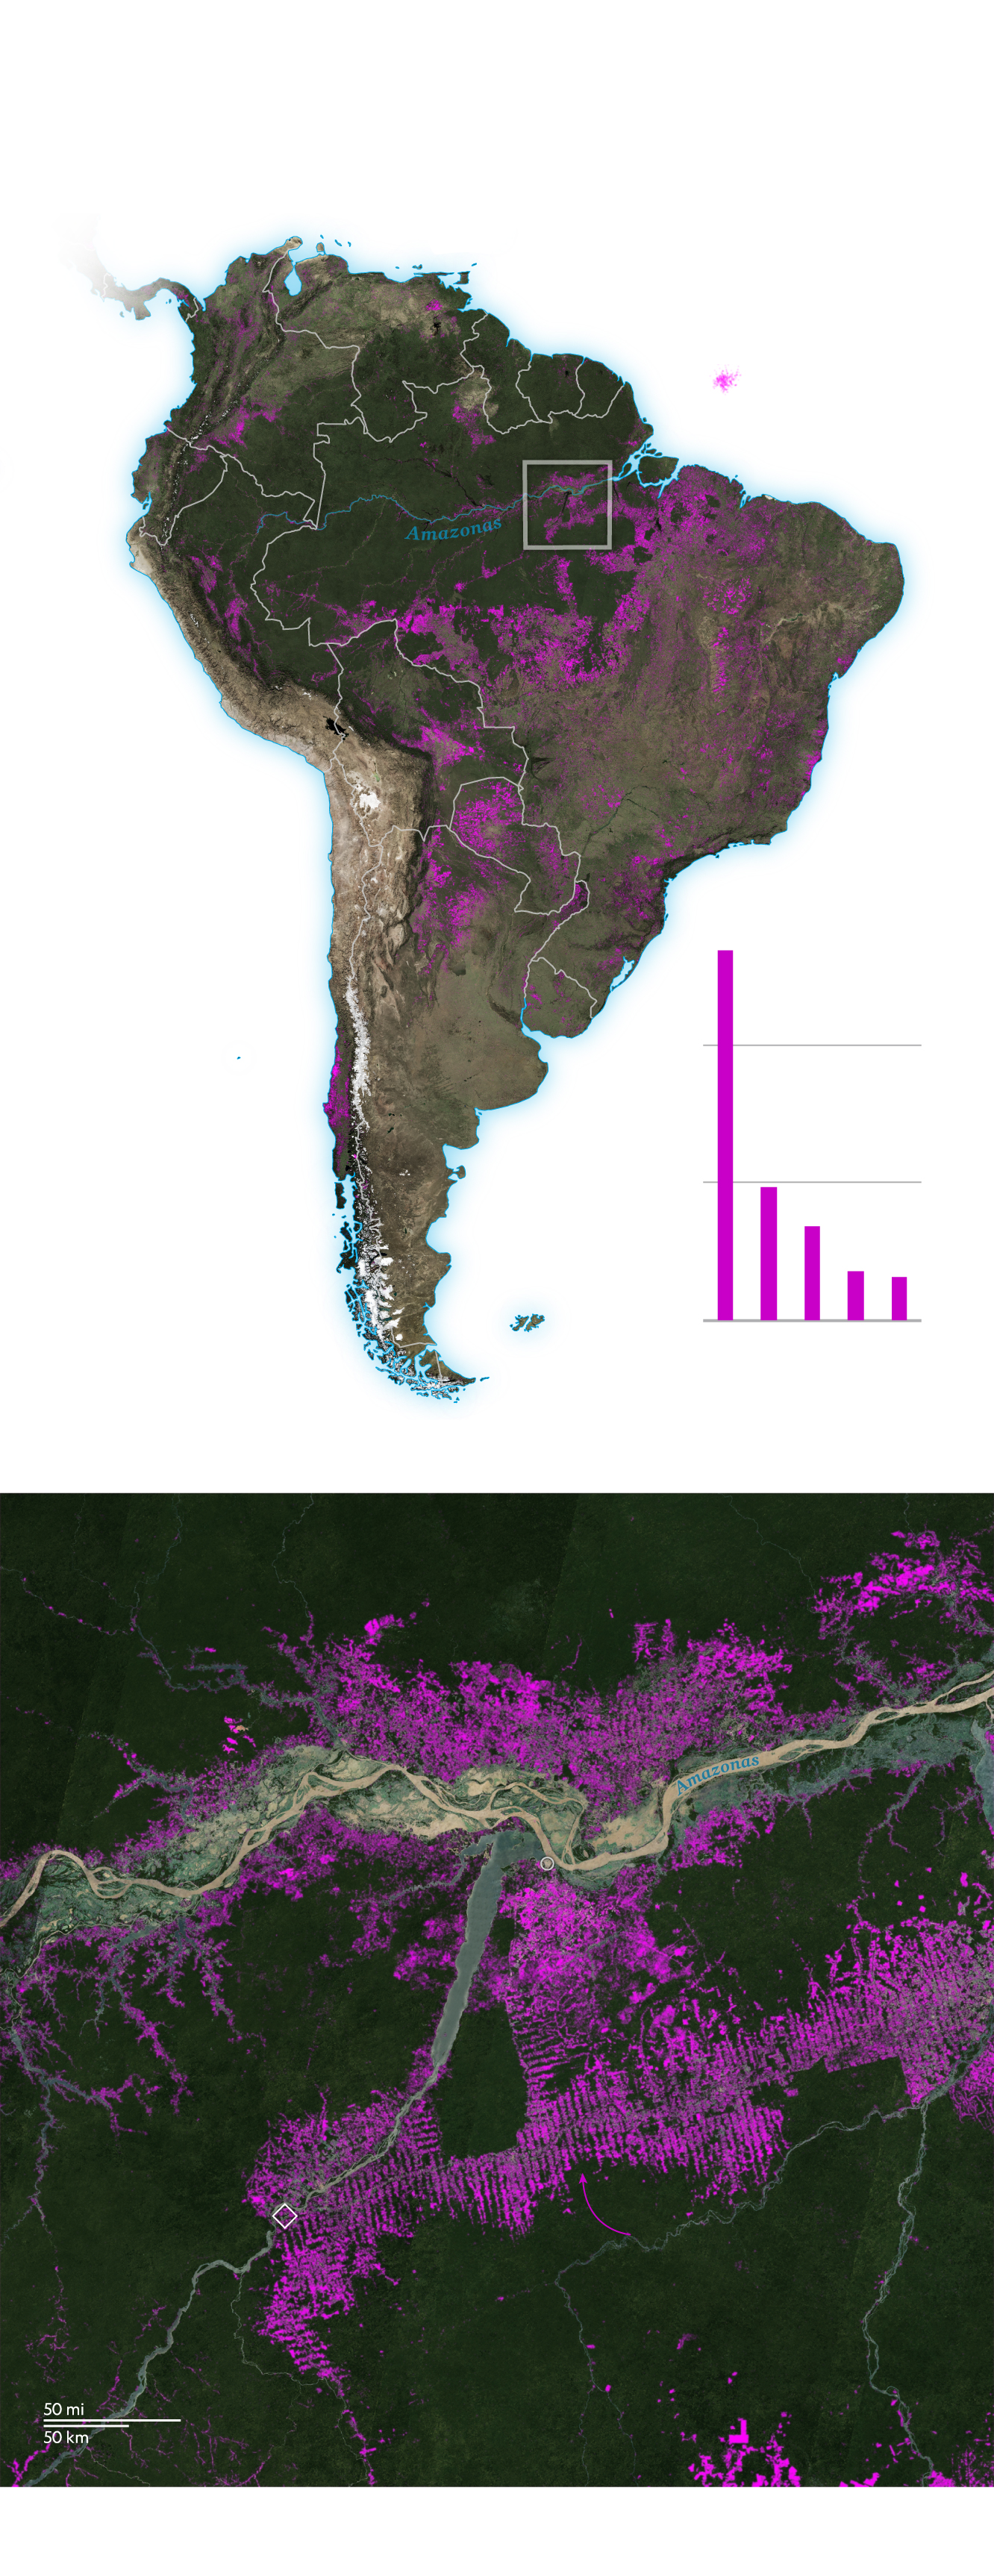 Map shows the millions of acres of zilian Amazon rain ... on ecological succession map, climate change, hydroelectric dams map, land pollution, transboundary pollution map, environmental issue, world map, ozone depletion, exploitation of natural resources, global warming map, land degradation, groundwater depletion map, pesticide use map, greenhouse gas, species extinction map, glacier melt map, global warming, ecological footprint map, environmental degradation, water depletion map, tree plantation map, intensive farming map, danish language map, illegal logging, mass extinction map, forest reserves map, land use map, indoor air pollution map, environmental problems map, genetically modified crops map,